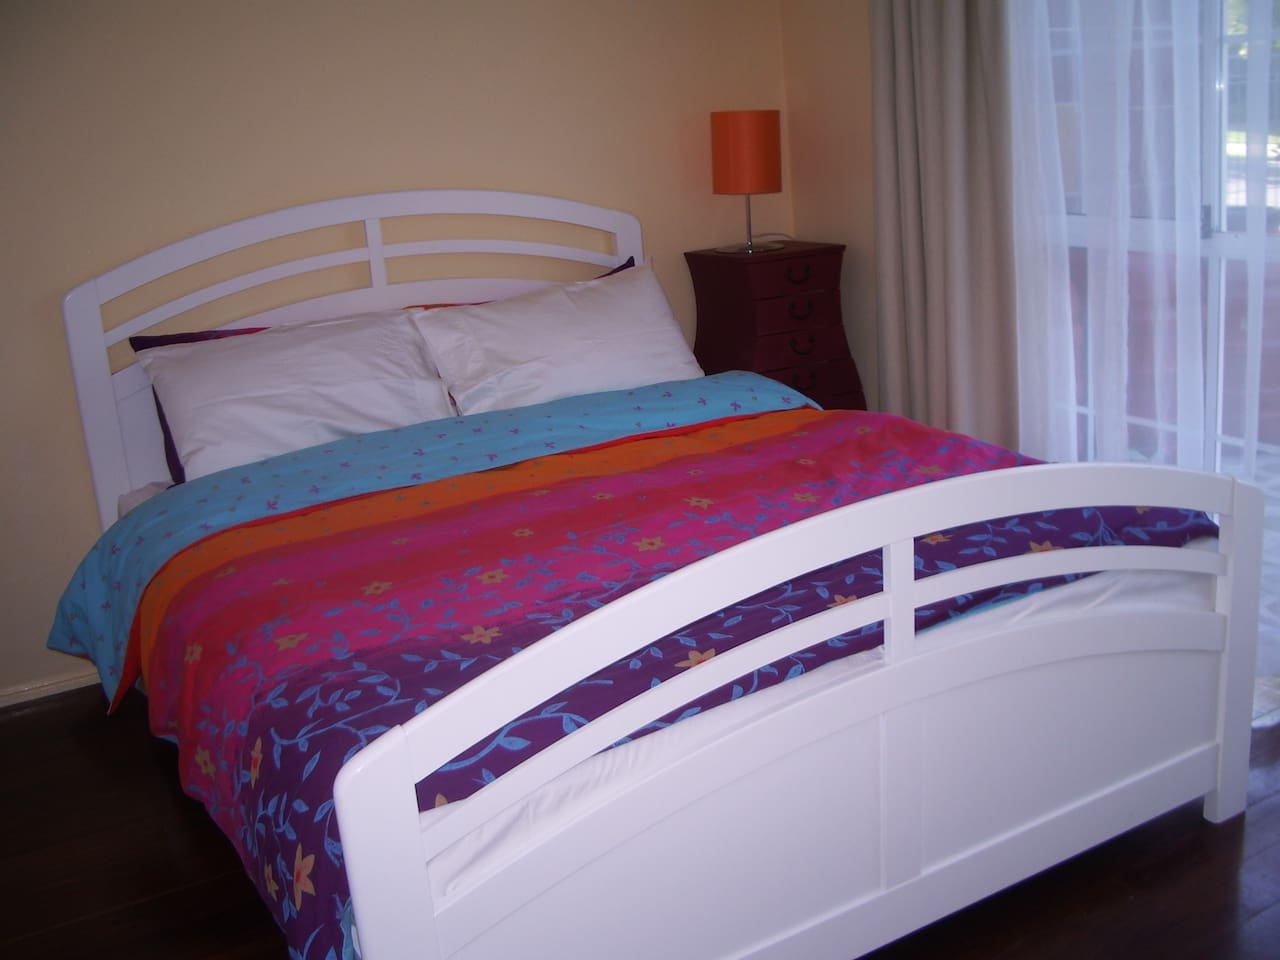 Room 1, Queen Bed